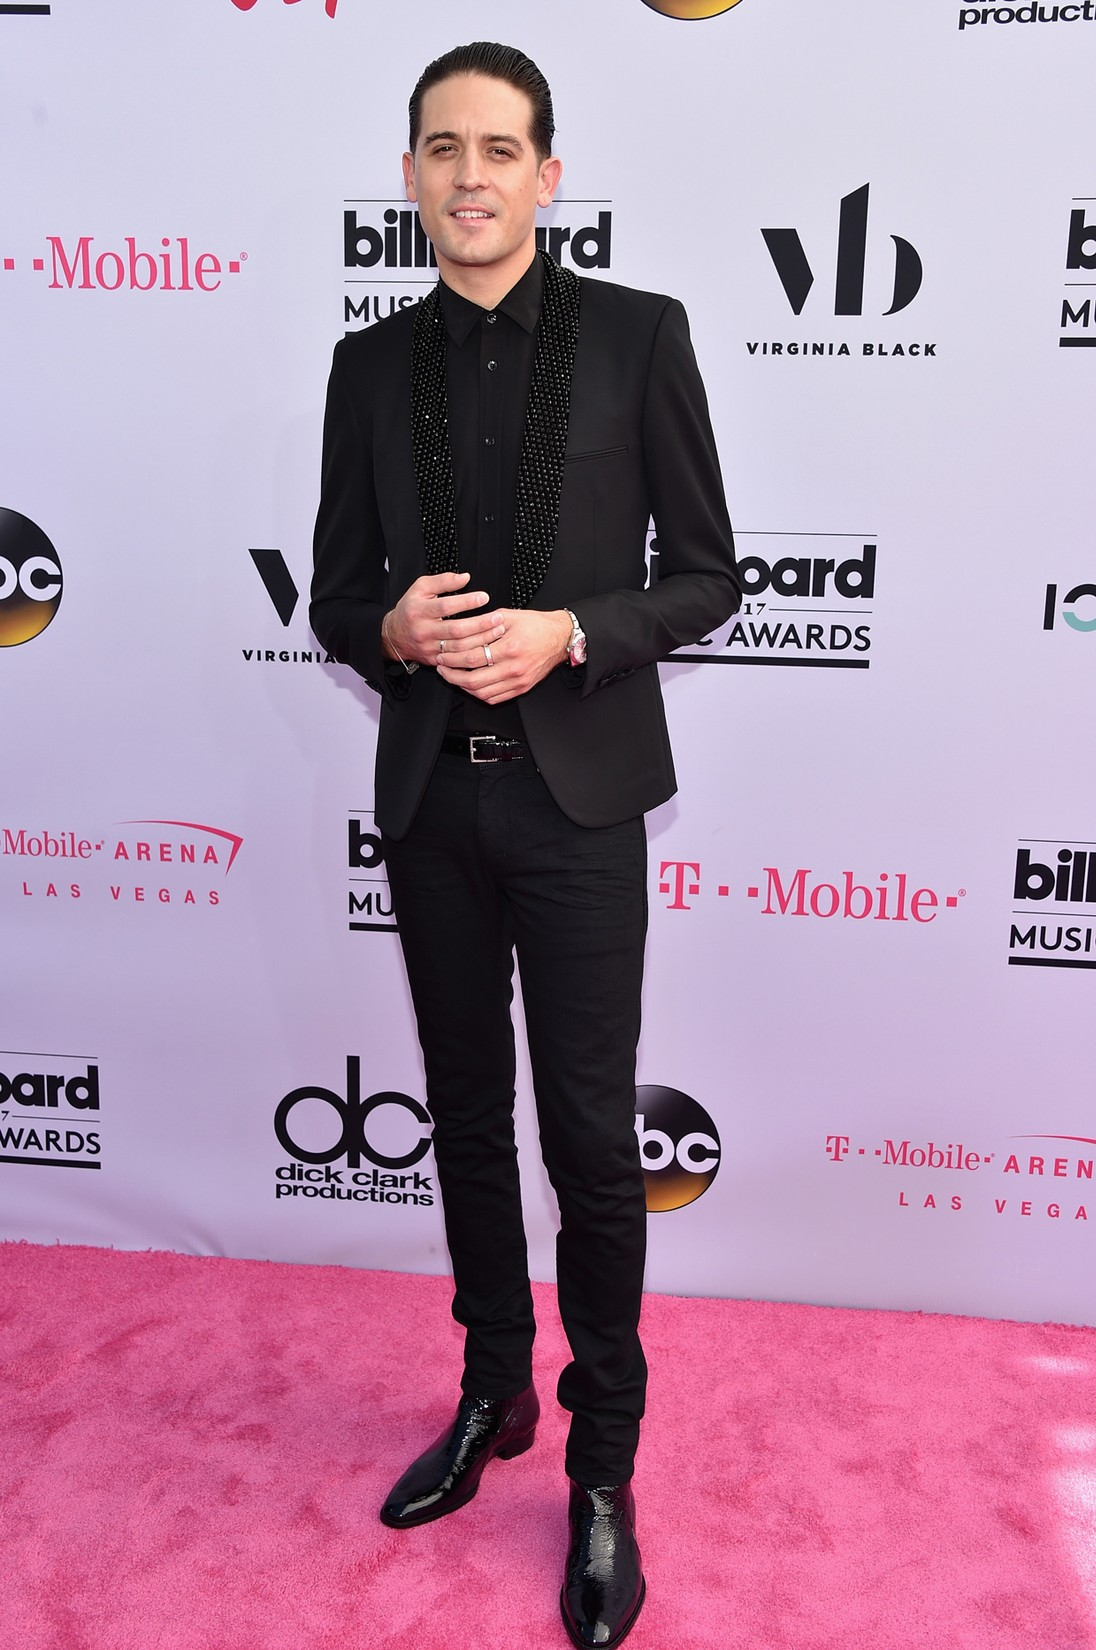 G-Eazy attends the 2017 Billboard Music Awards at T-Mobile Arena on May 21, 2017 in Las Vegas.